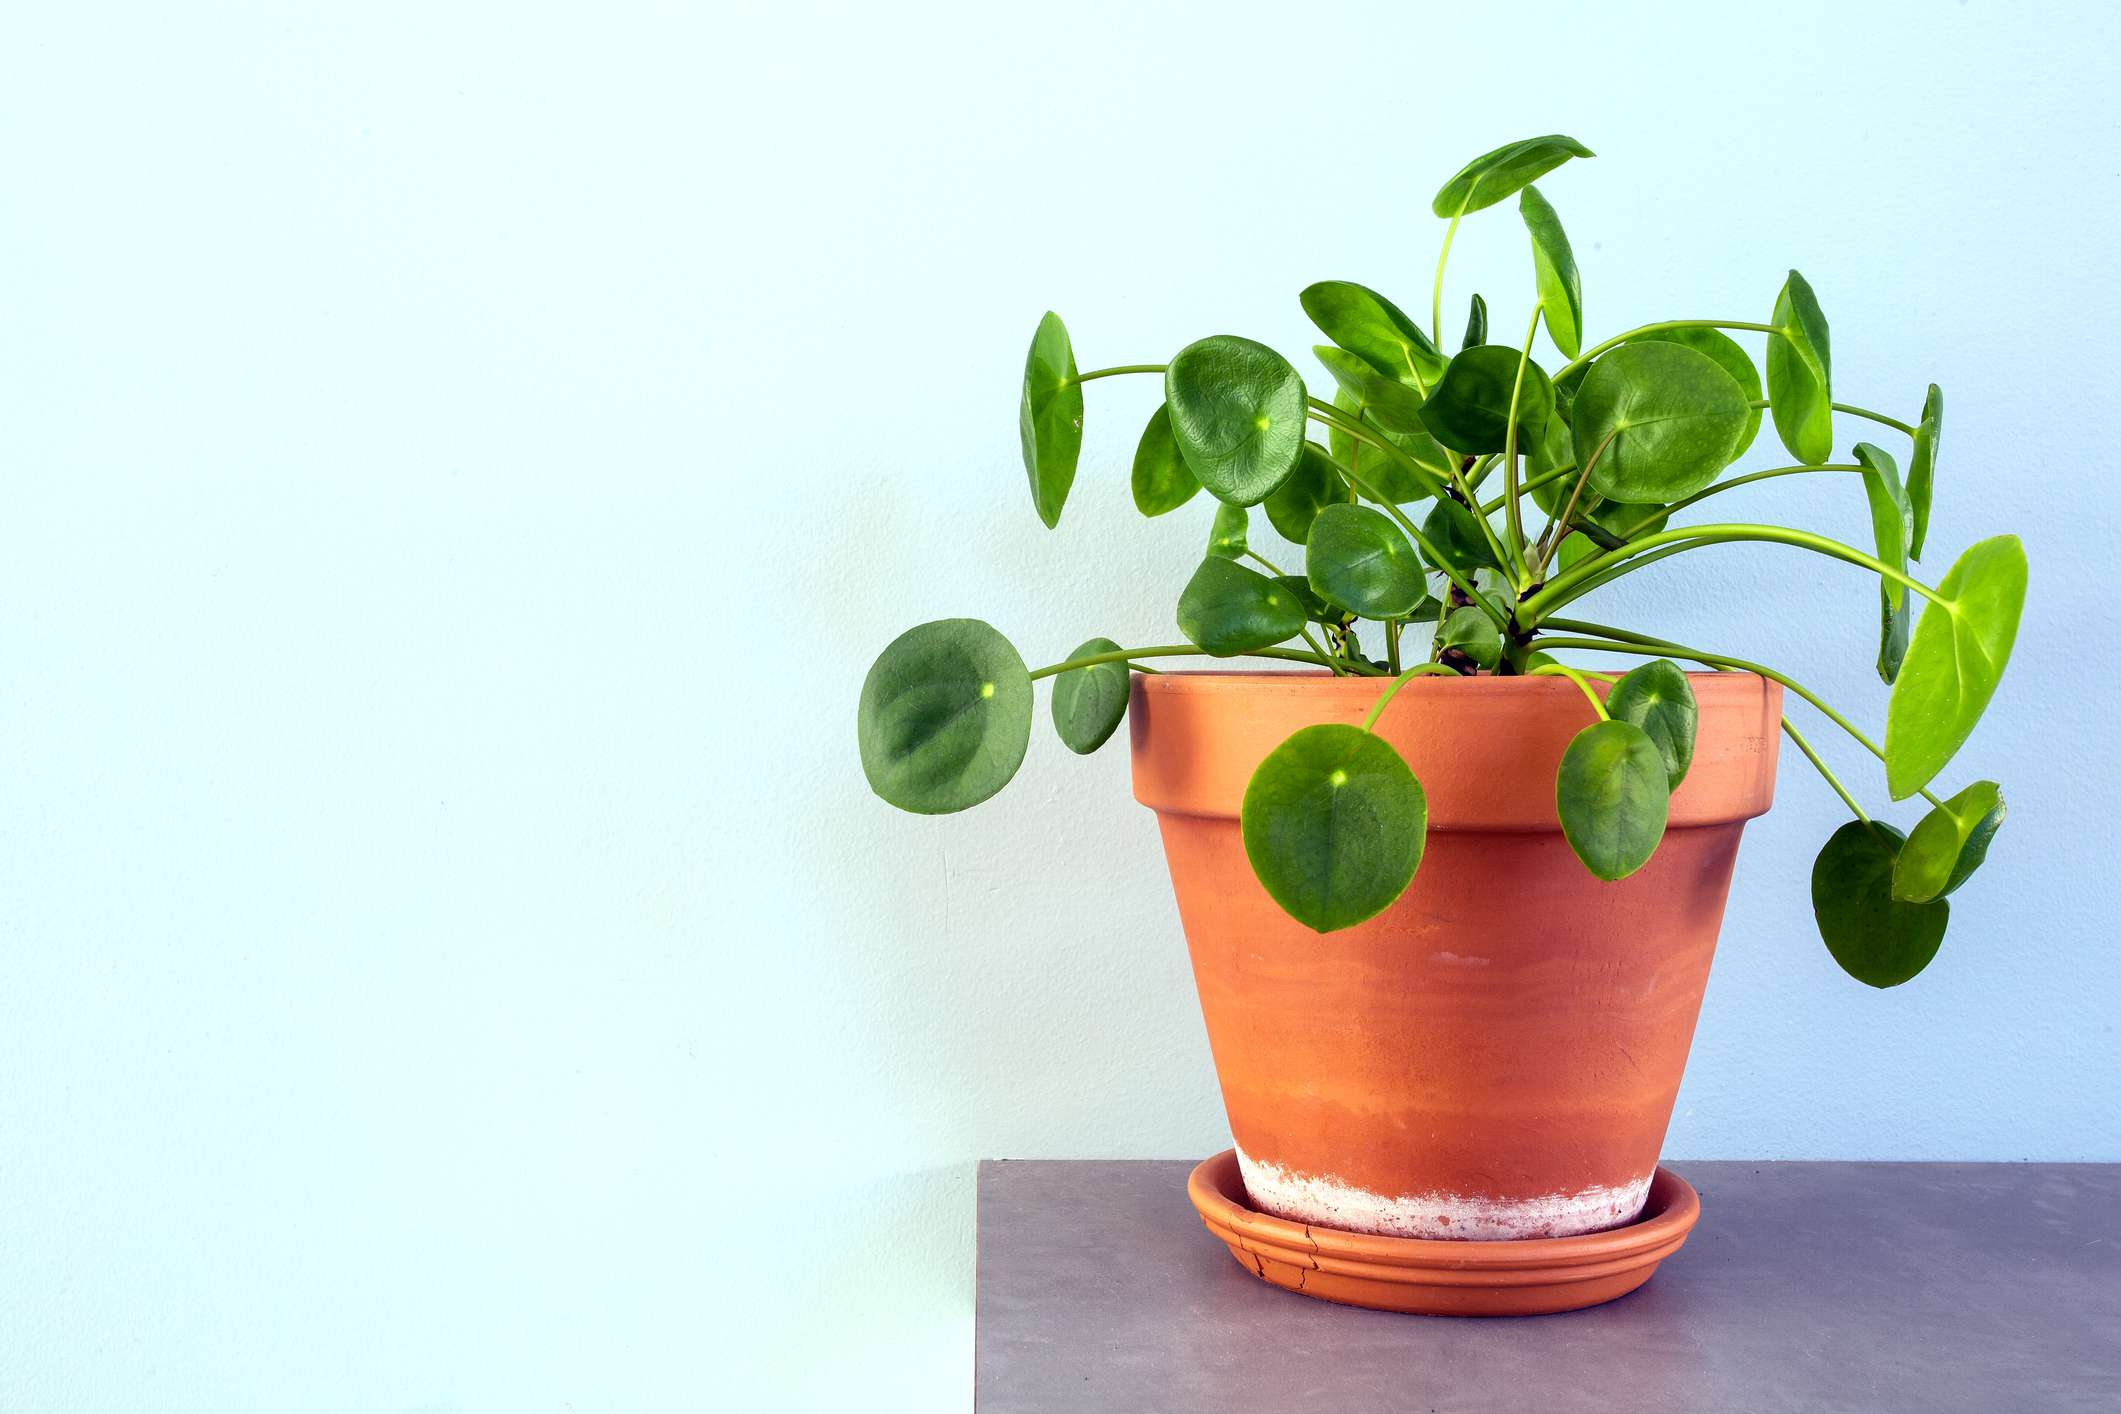 pilea peperomioides, Chinese Money Plant, Ufo Plant or Pancake plant in retro modern design home decoration